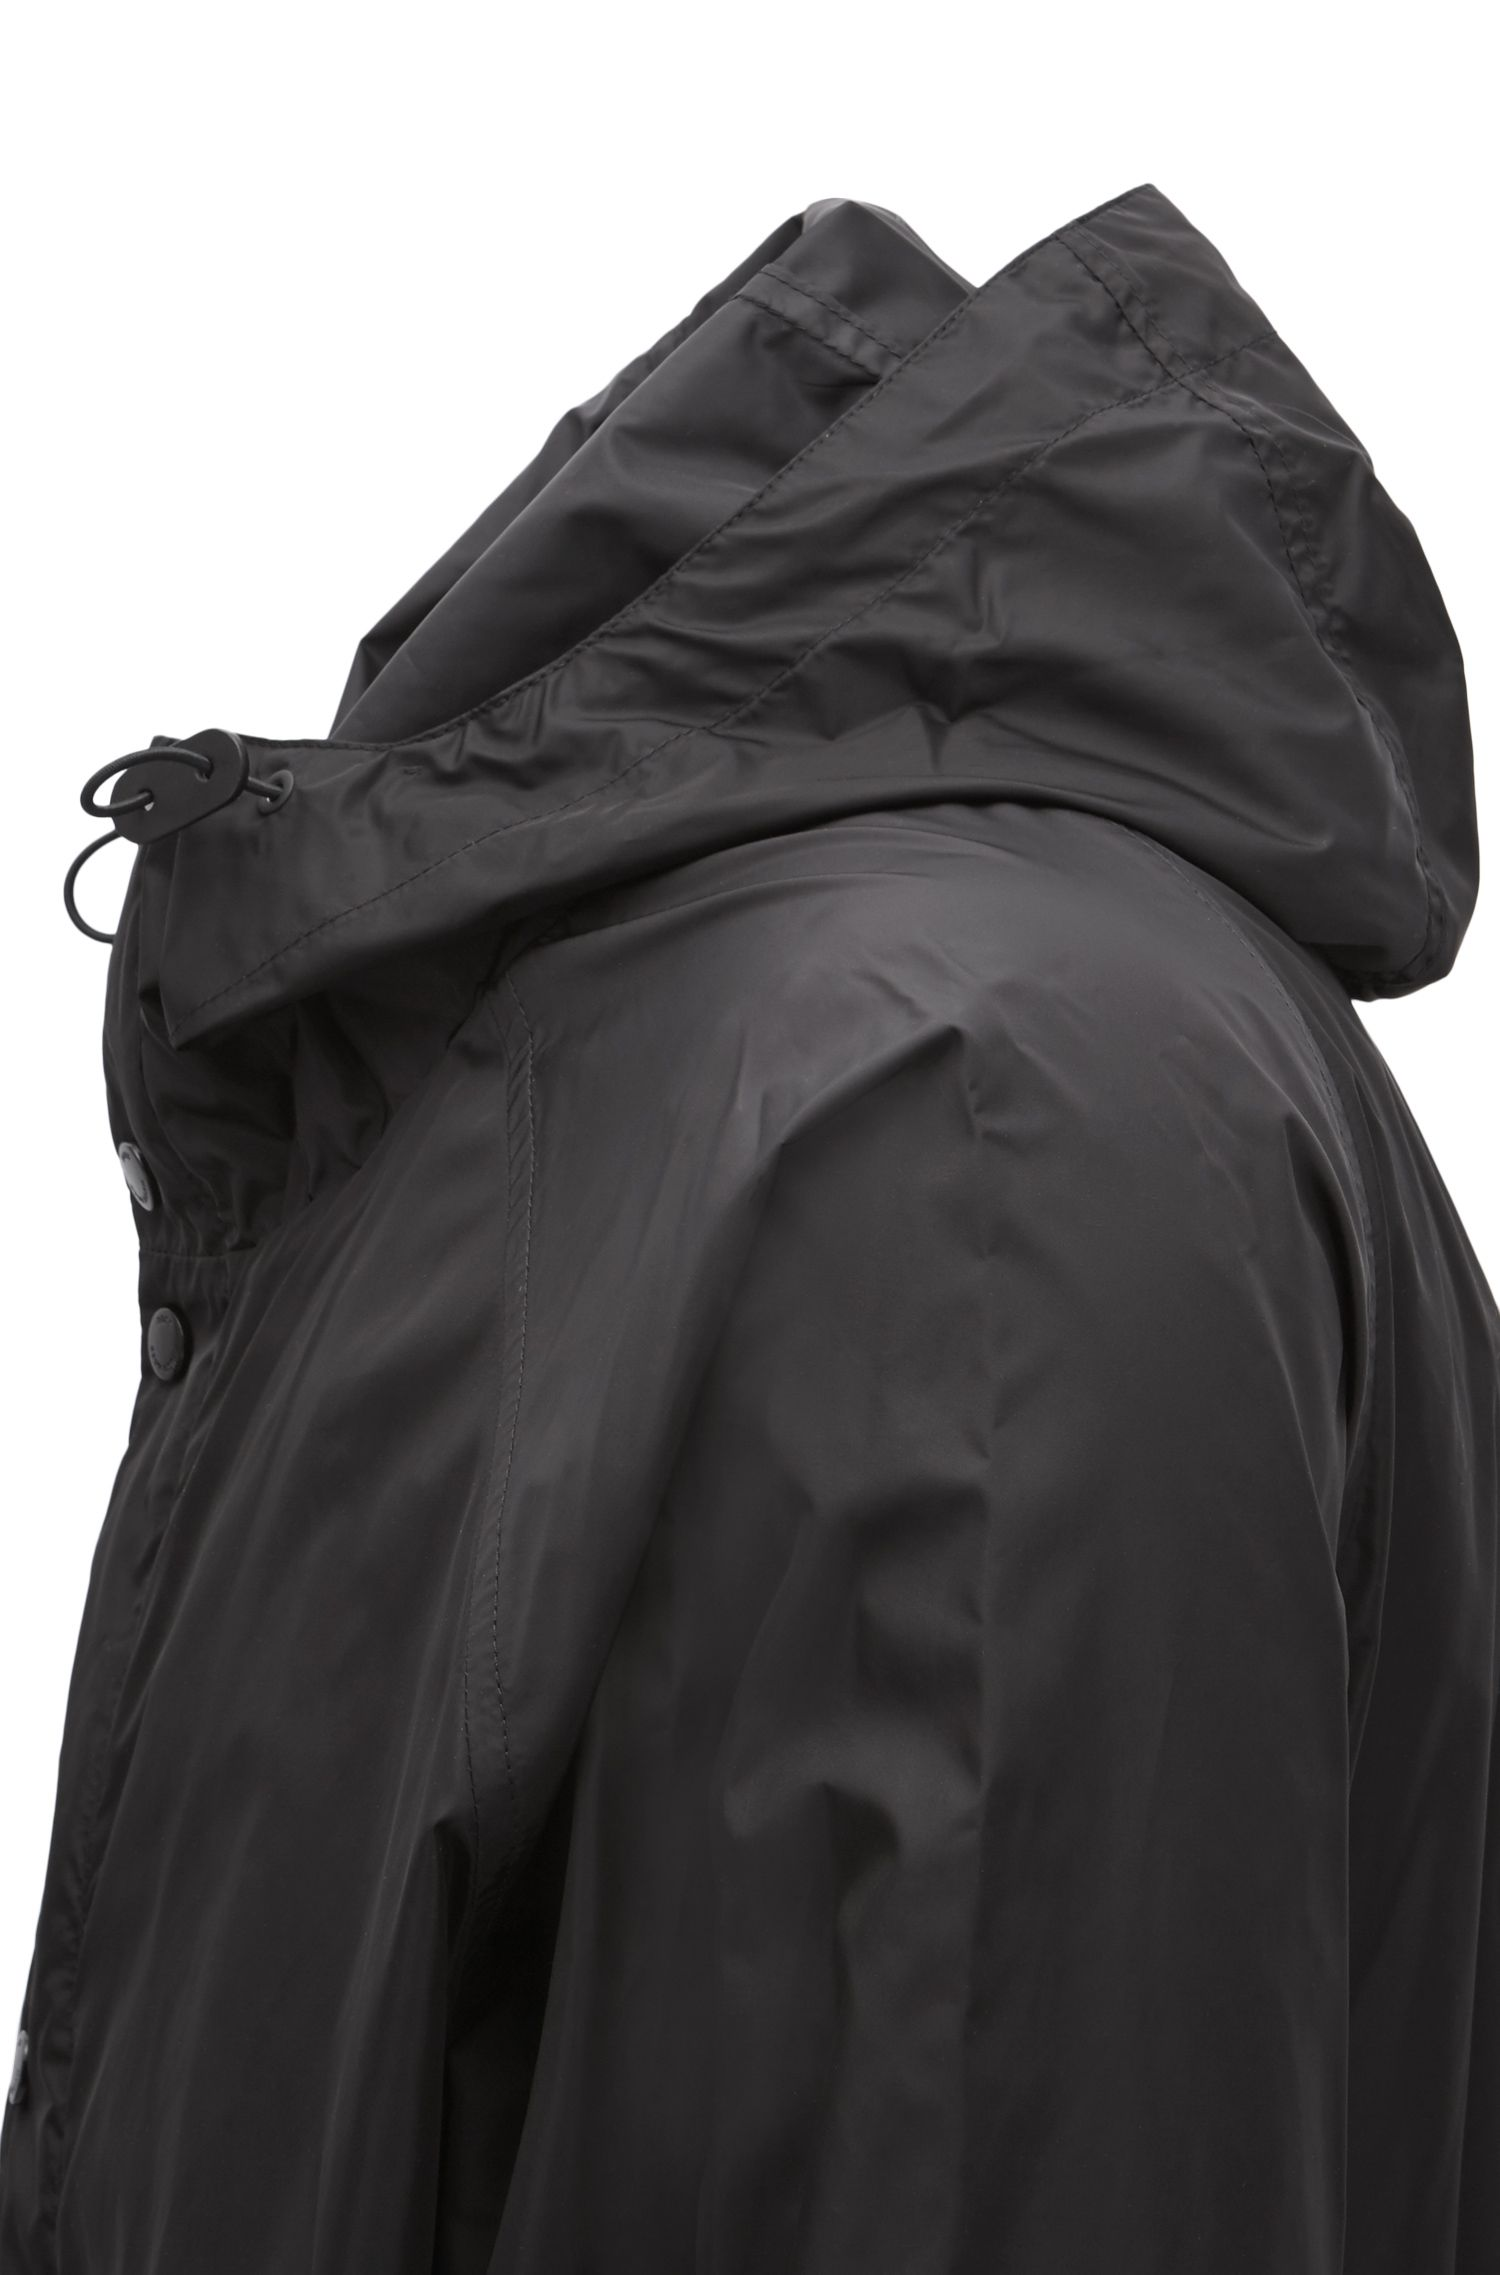 Windbreaker jacket in technical water-repellent fabric